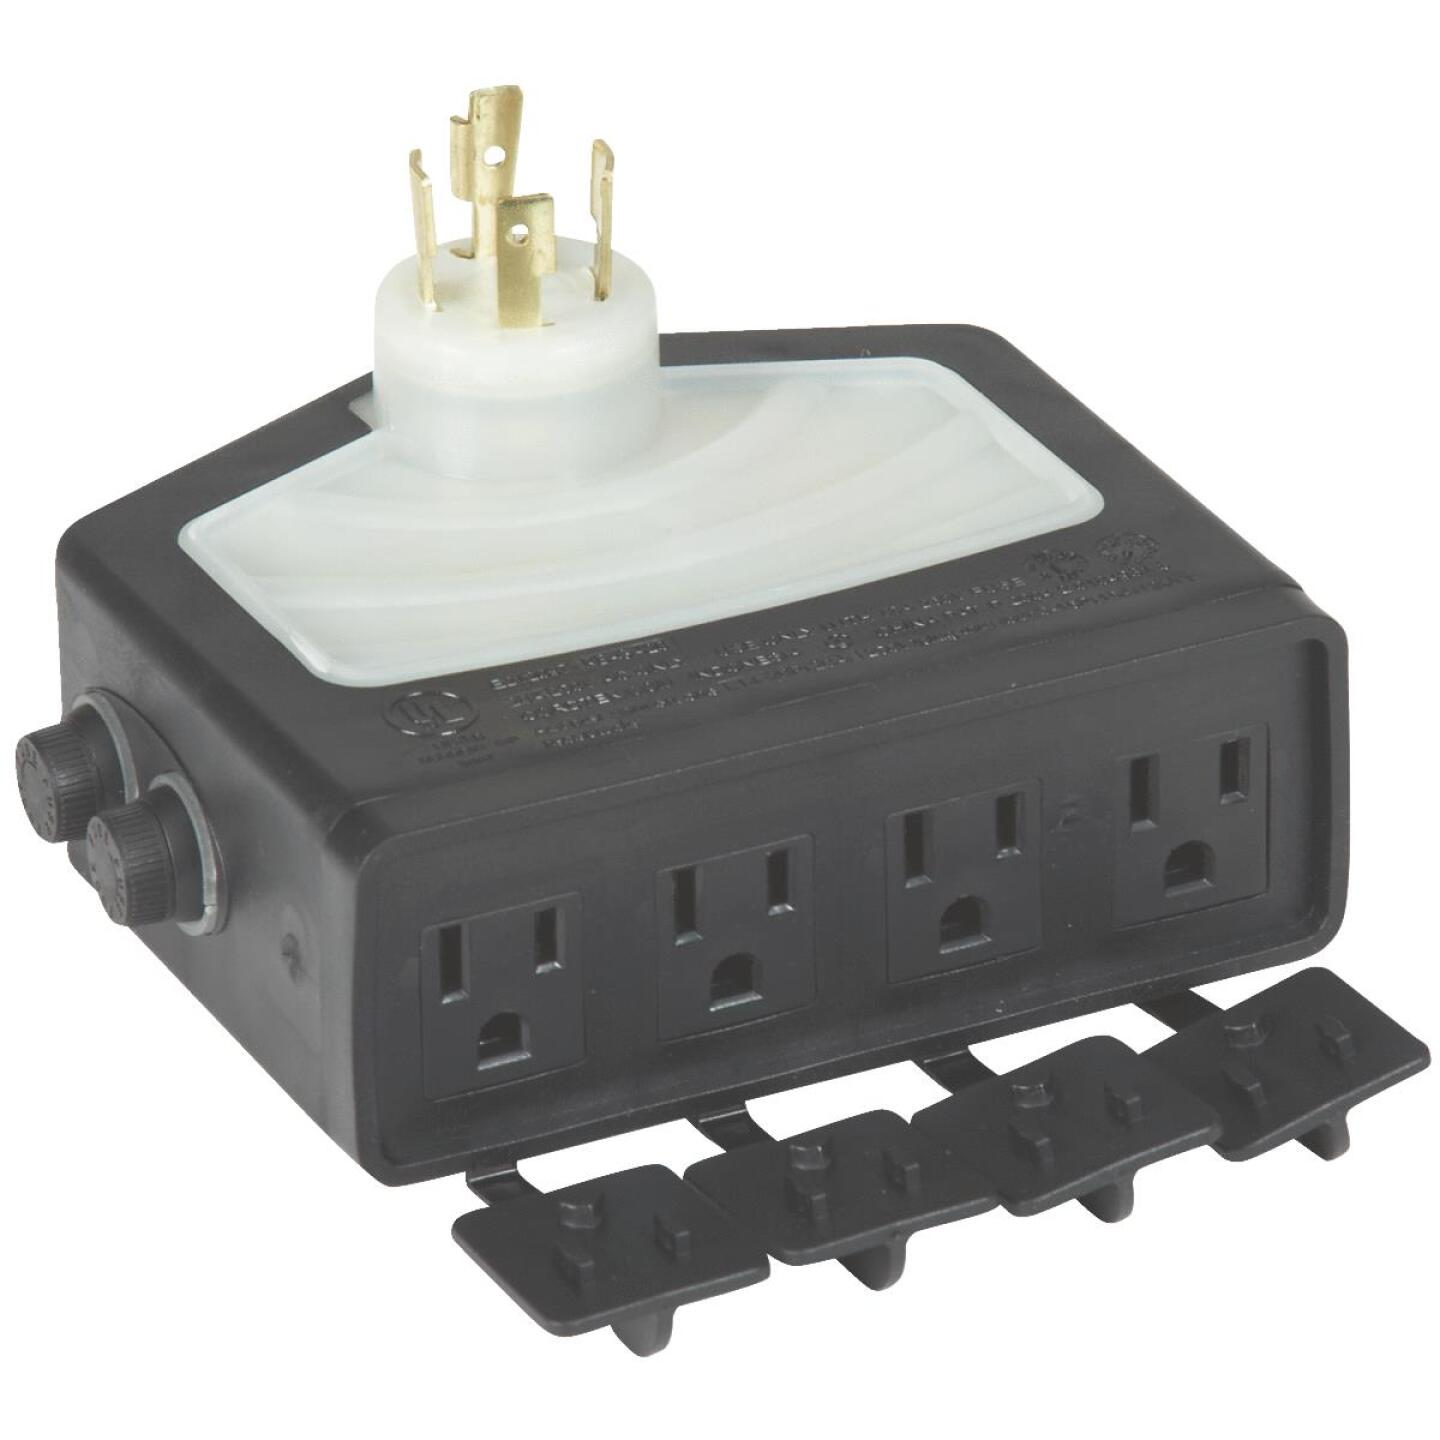 Do it 4-Outlet 20A/250V Generator Adapter Image 1